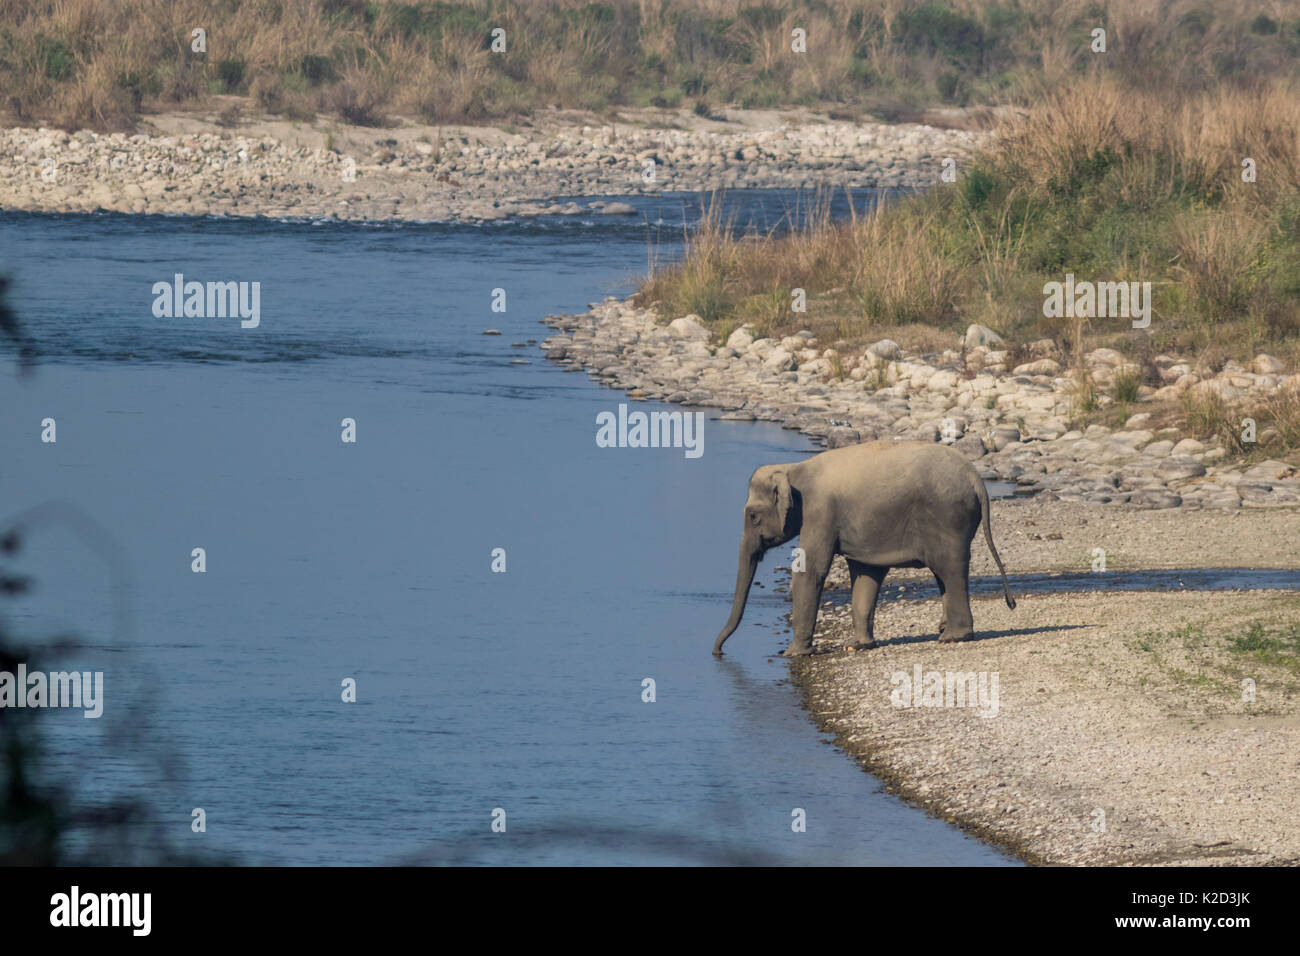 The Indian elephant (Elephas maximus indicus) drinking water in the Ramganga river in Corbett Tiger Reserve in Uttarakhand, India. - Stock Image